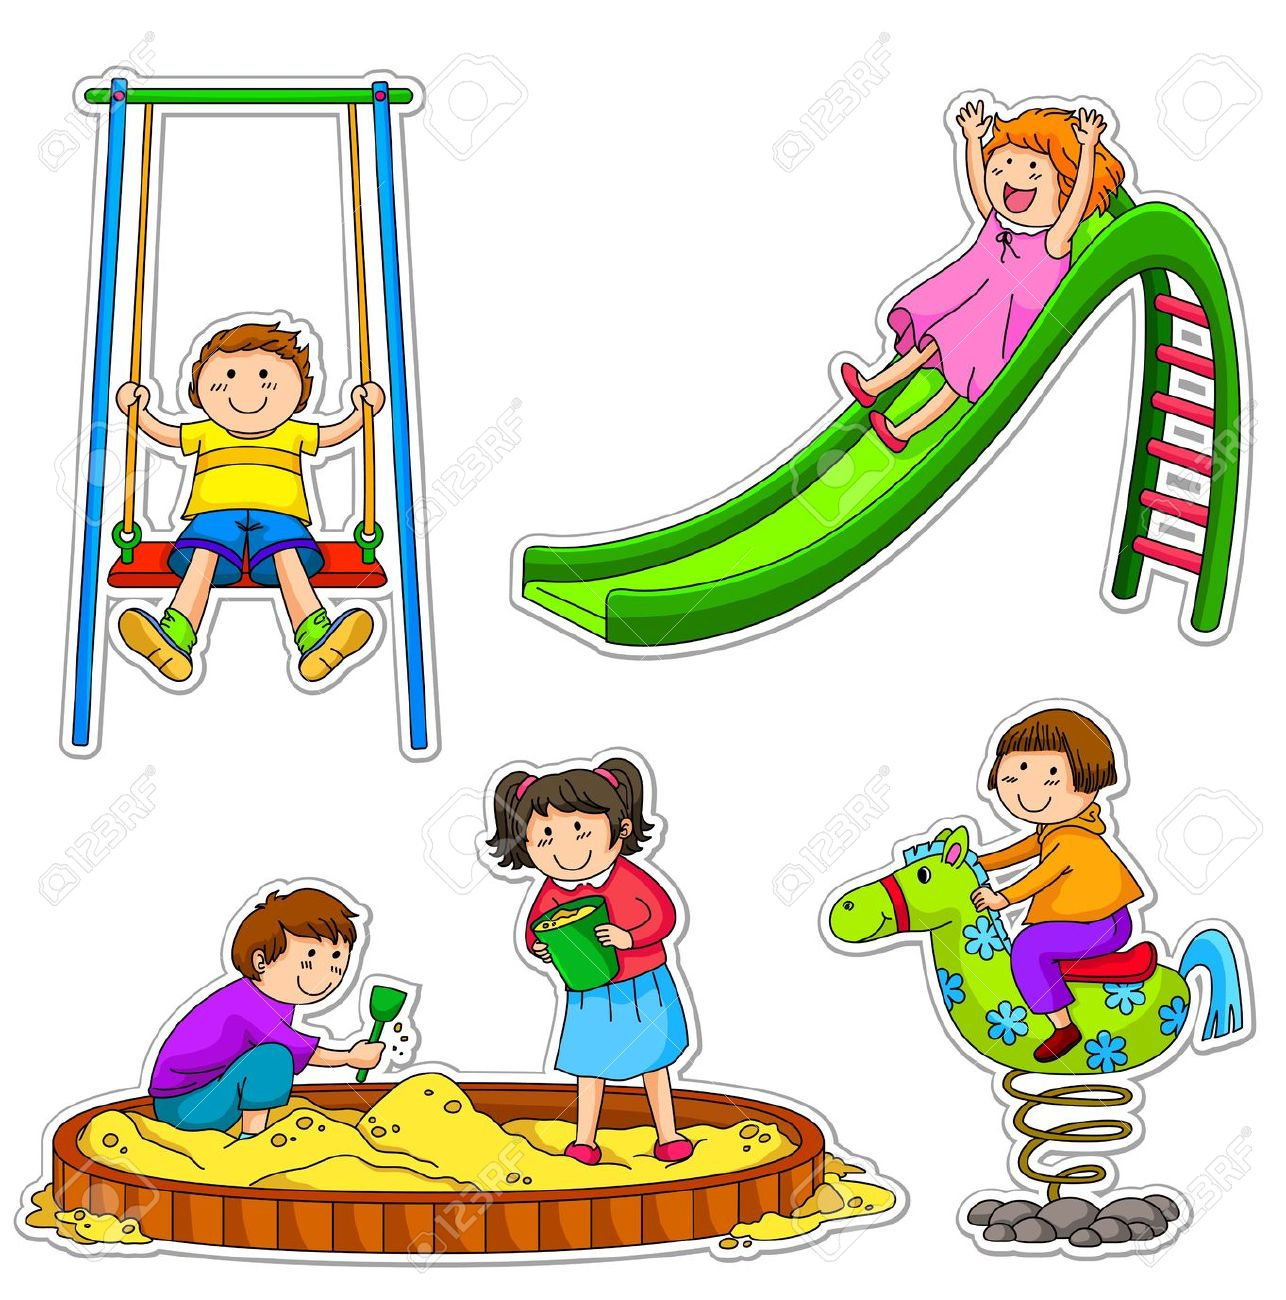 Outside play free download. Playground clipart playground fun